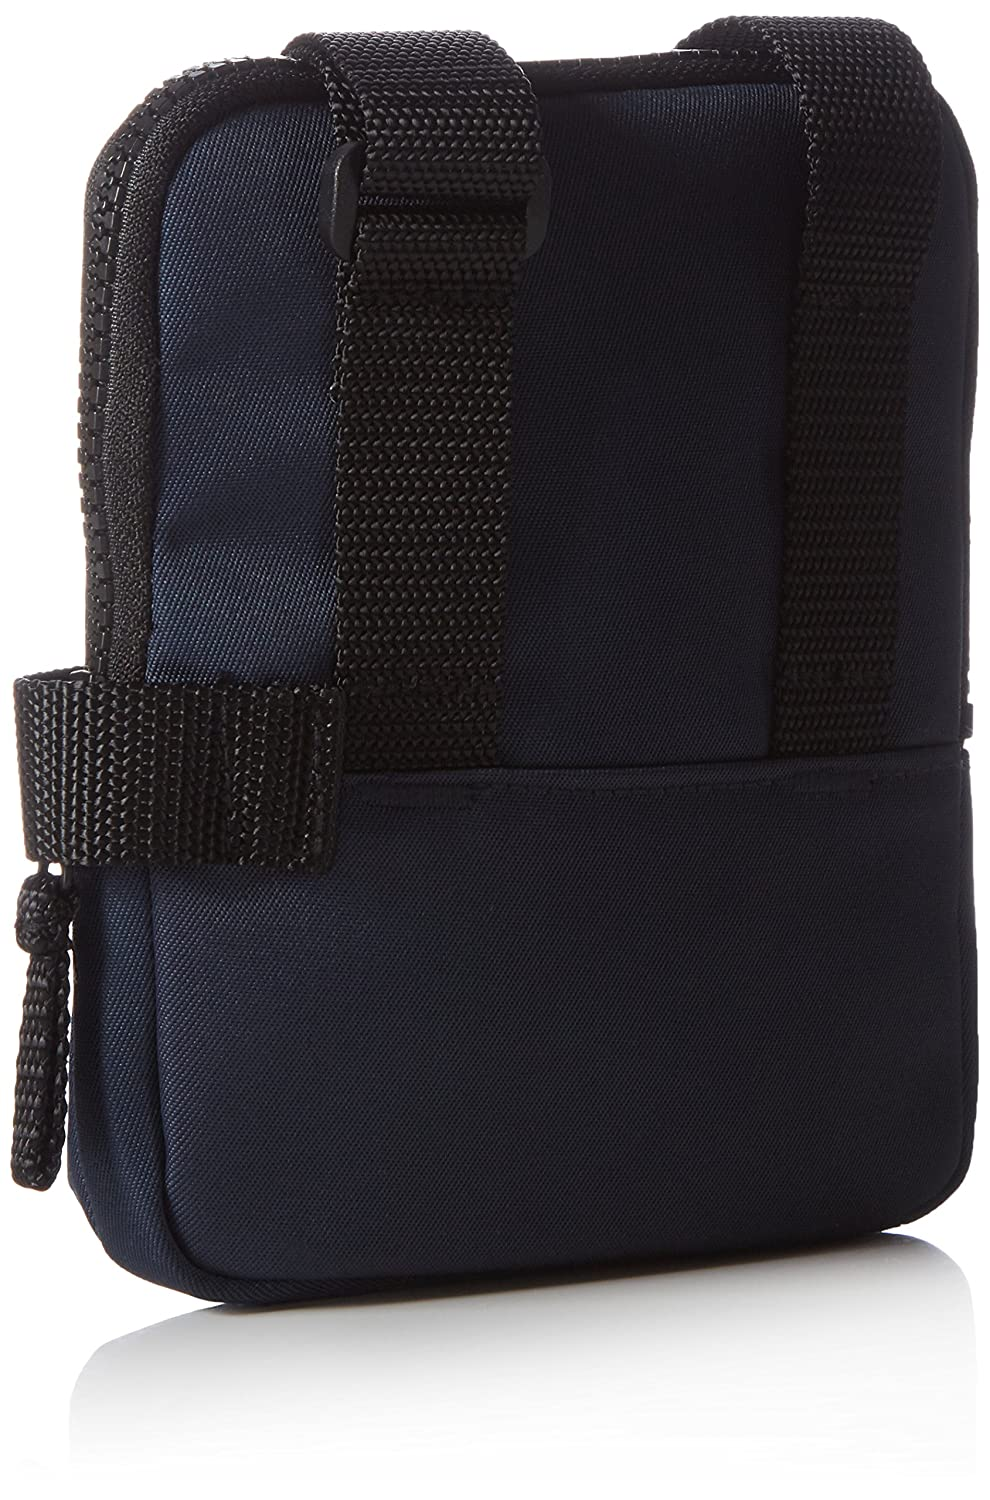 Choice Cheap Online Sale Many Kinds Of G-Star G-Star Men's Originals Medium Bag Organisers Clearance Cheap Real bw3I0VOgvI